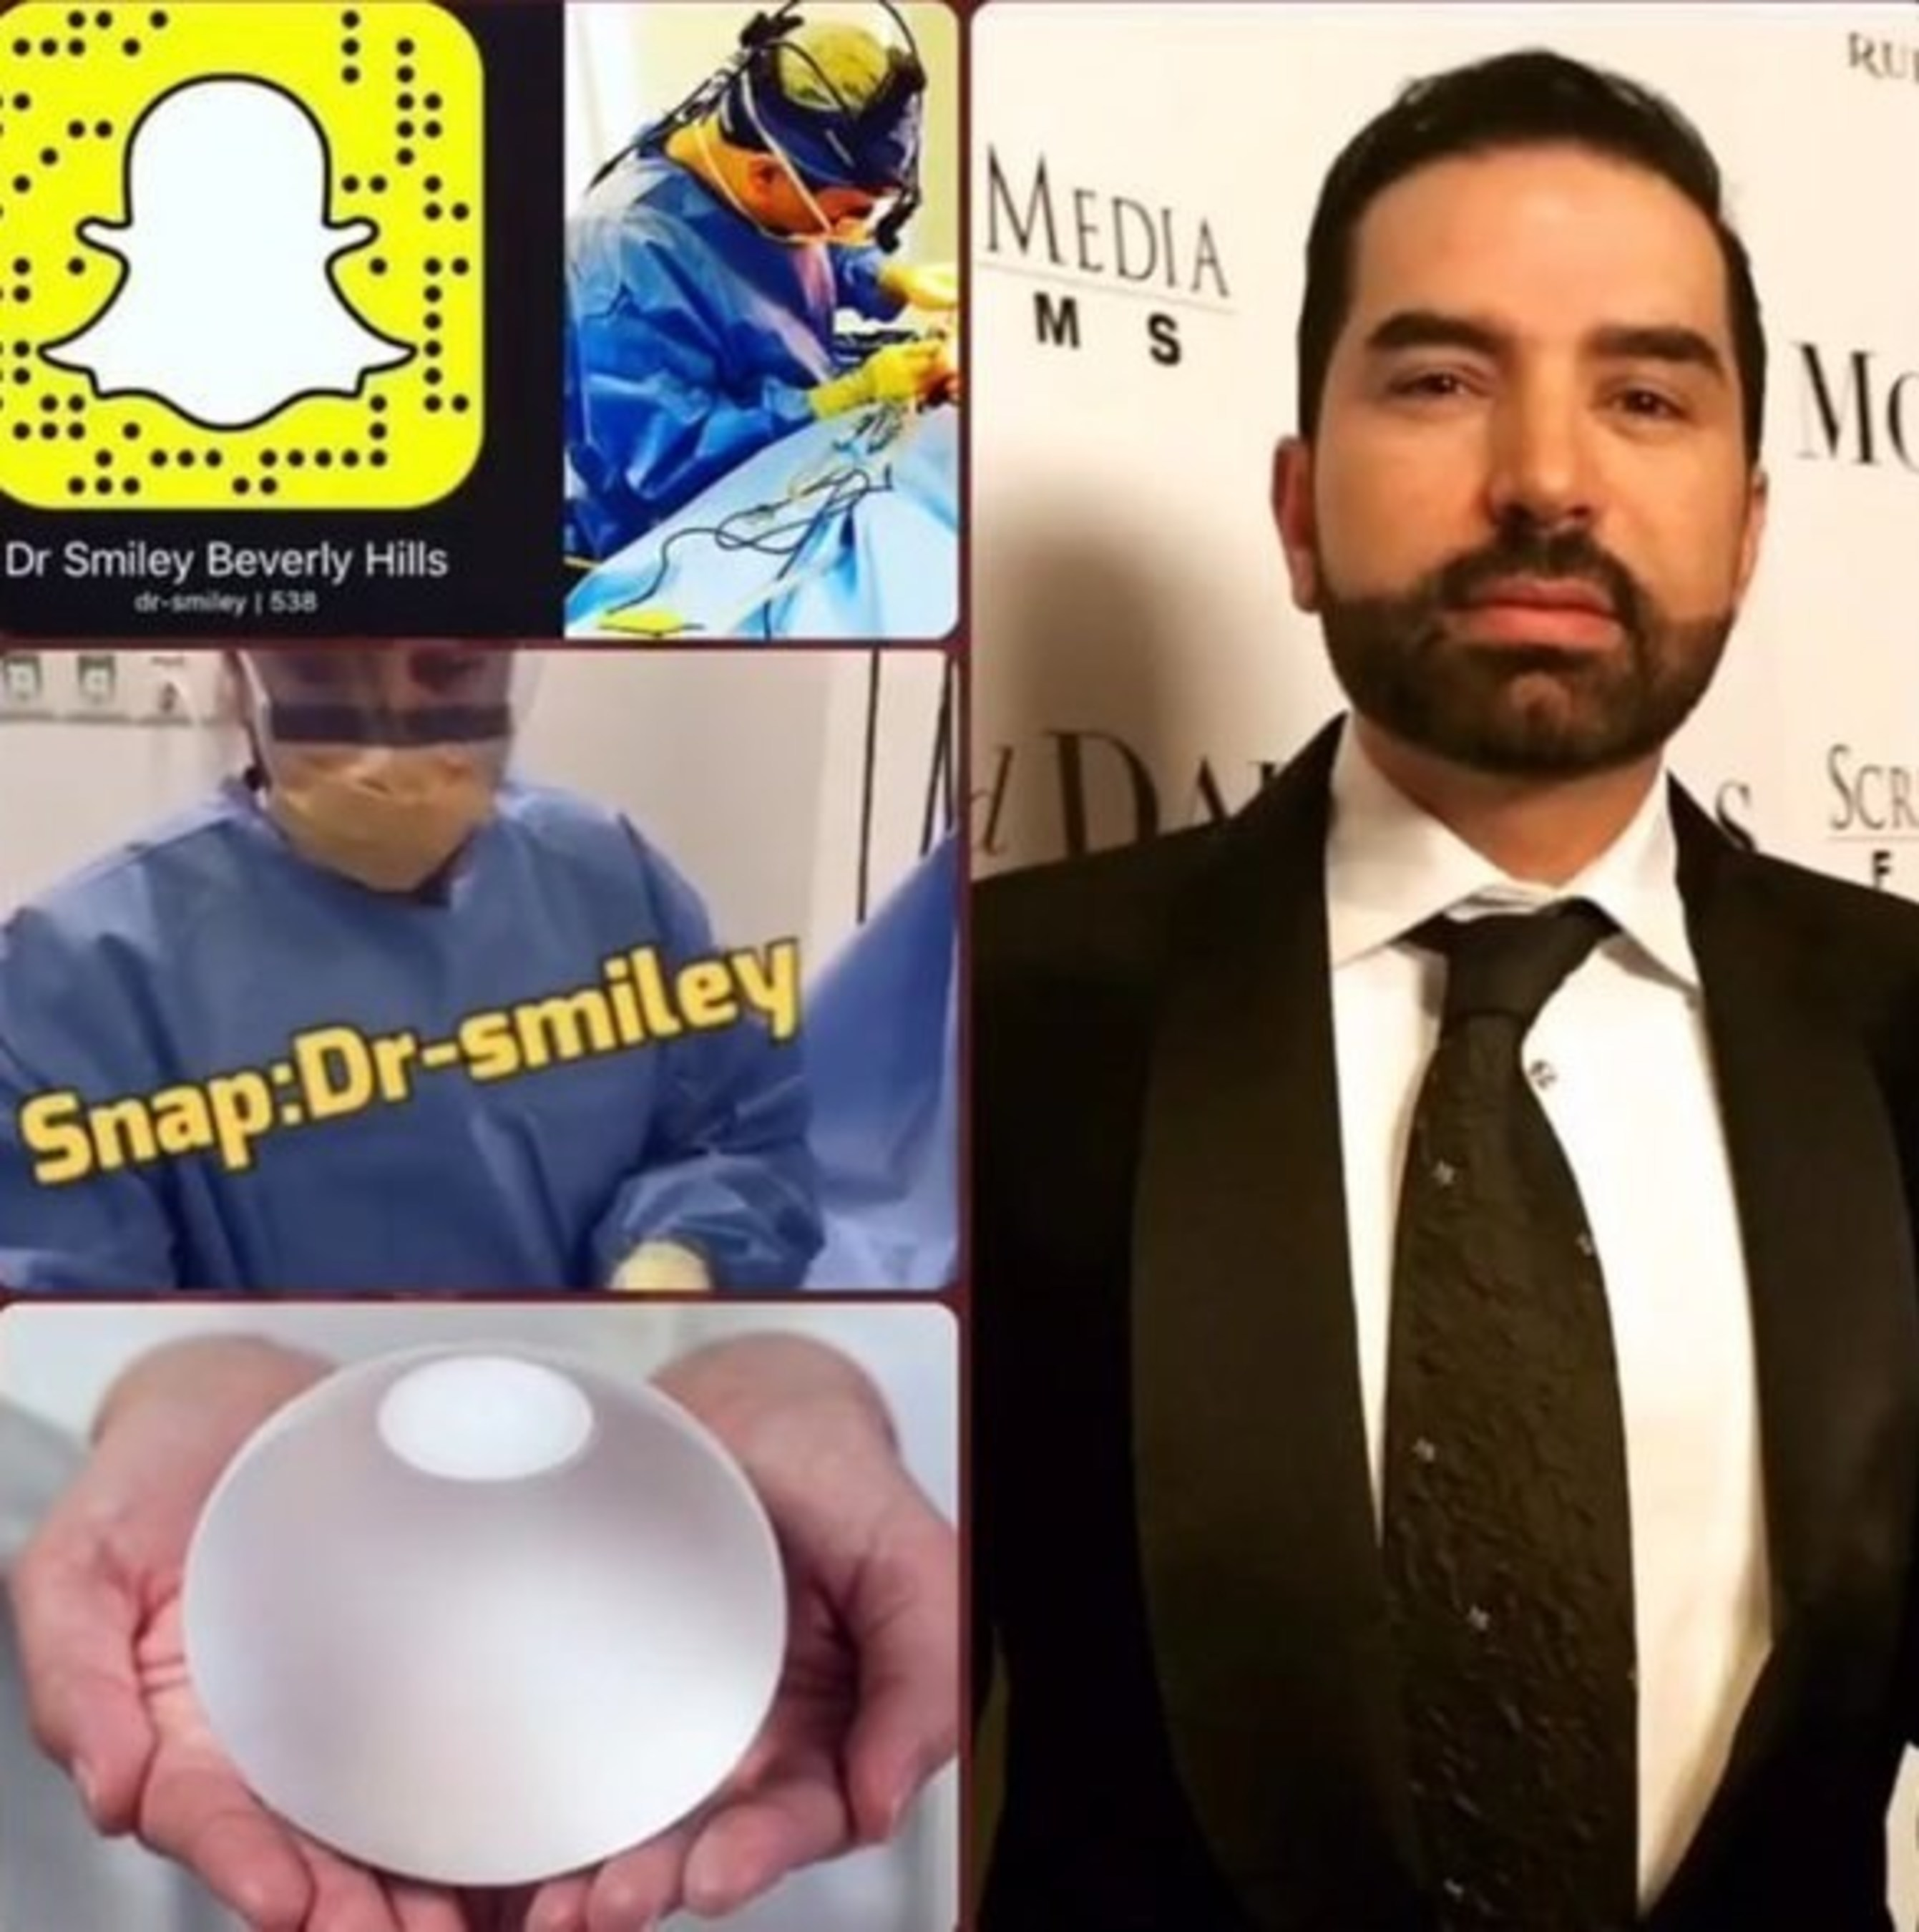 Dr smiley beverly hills